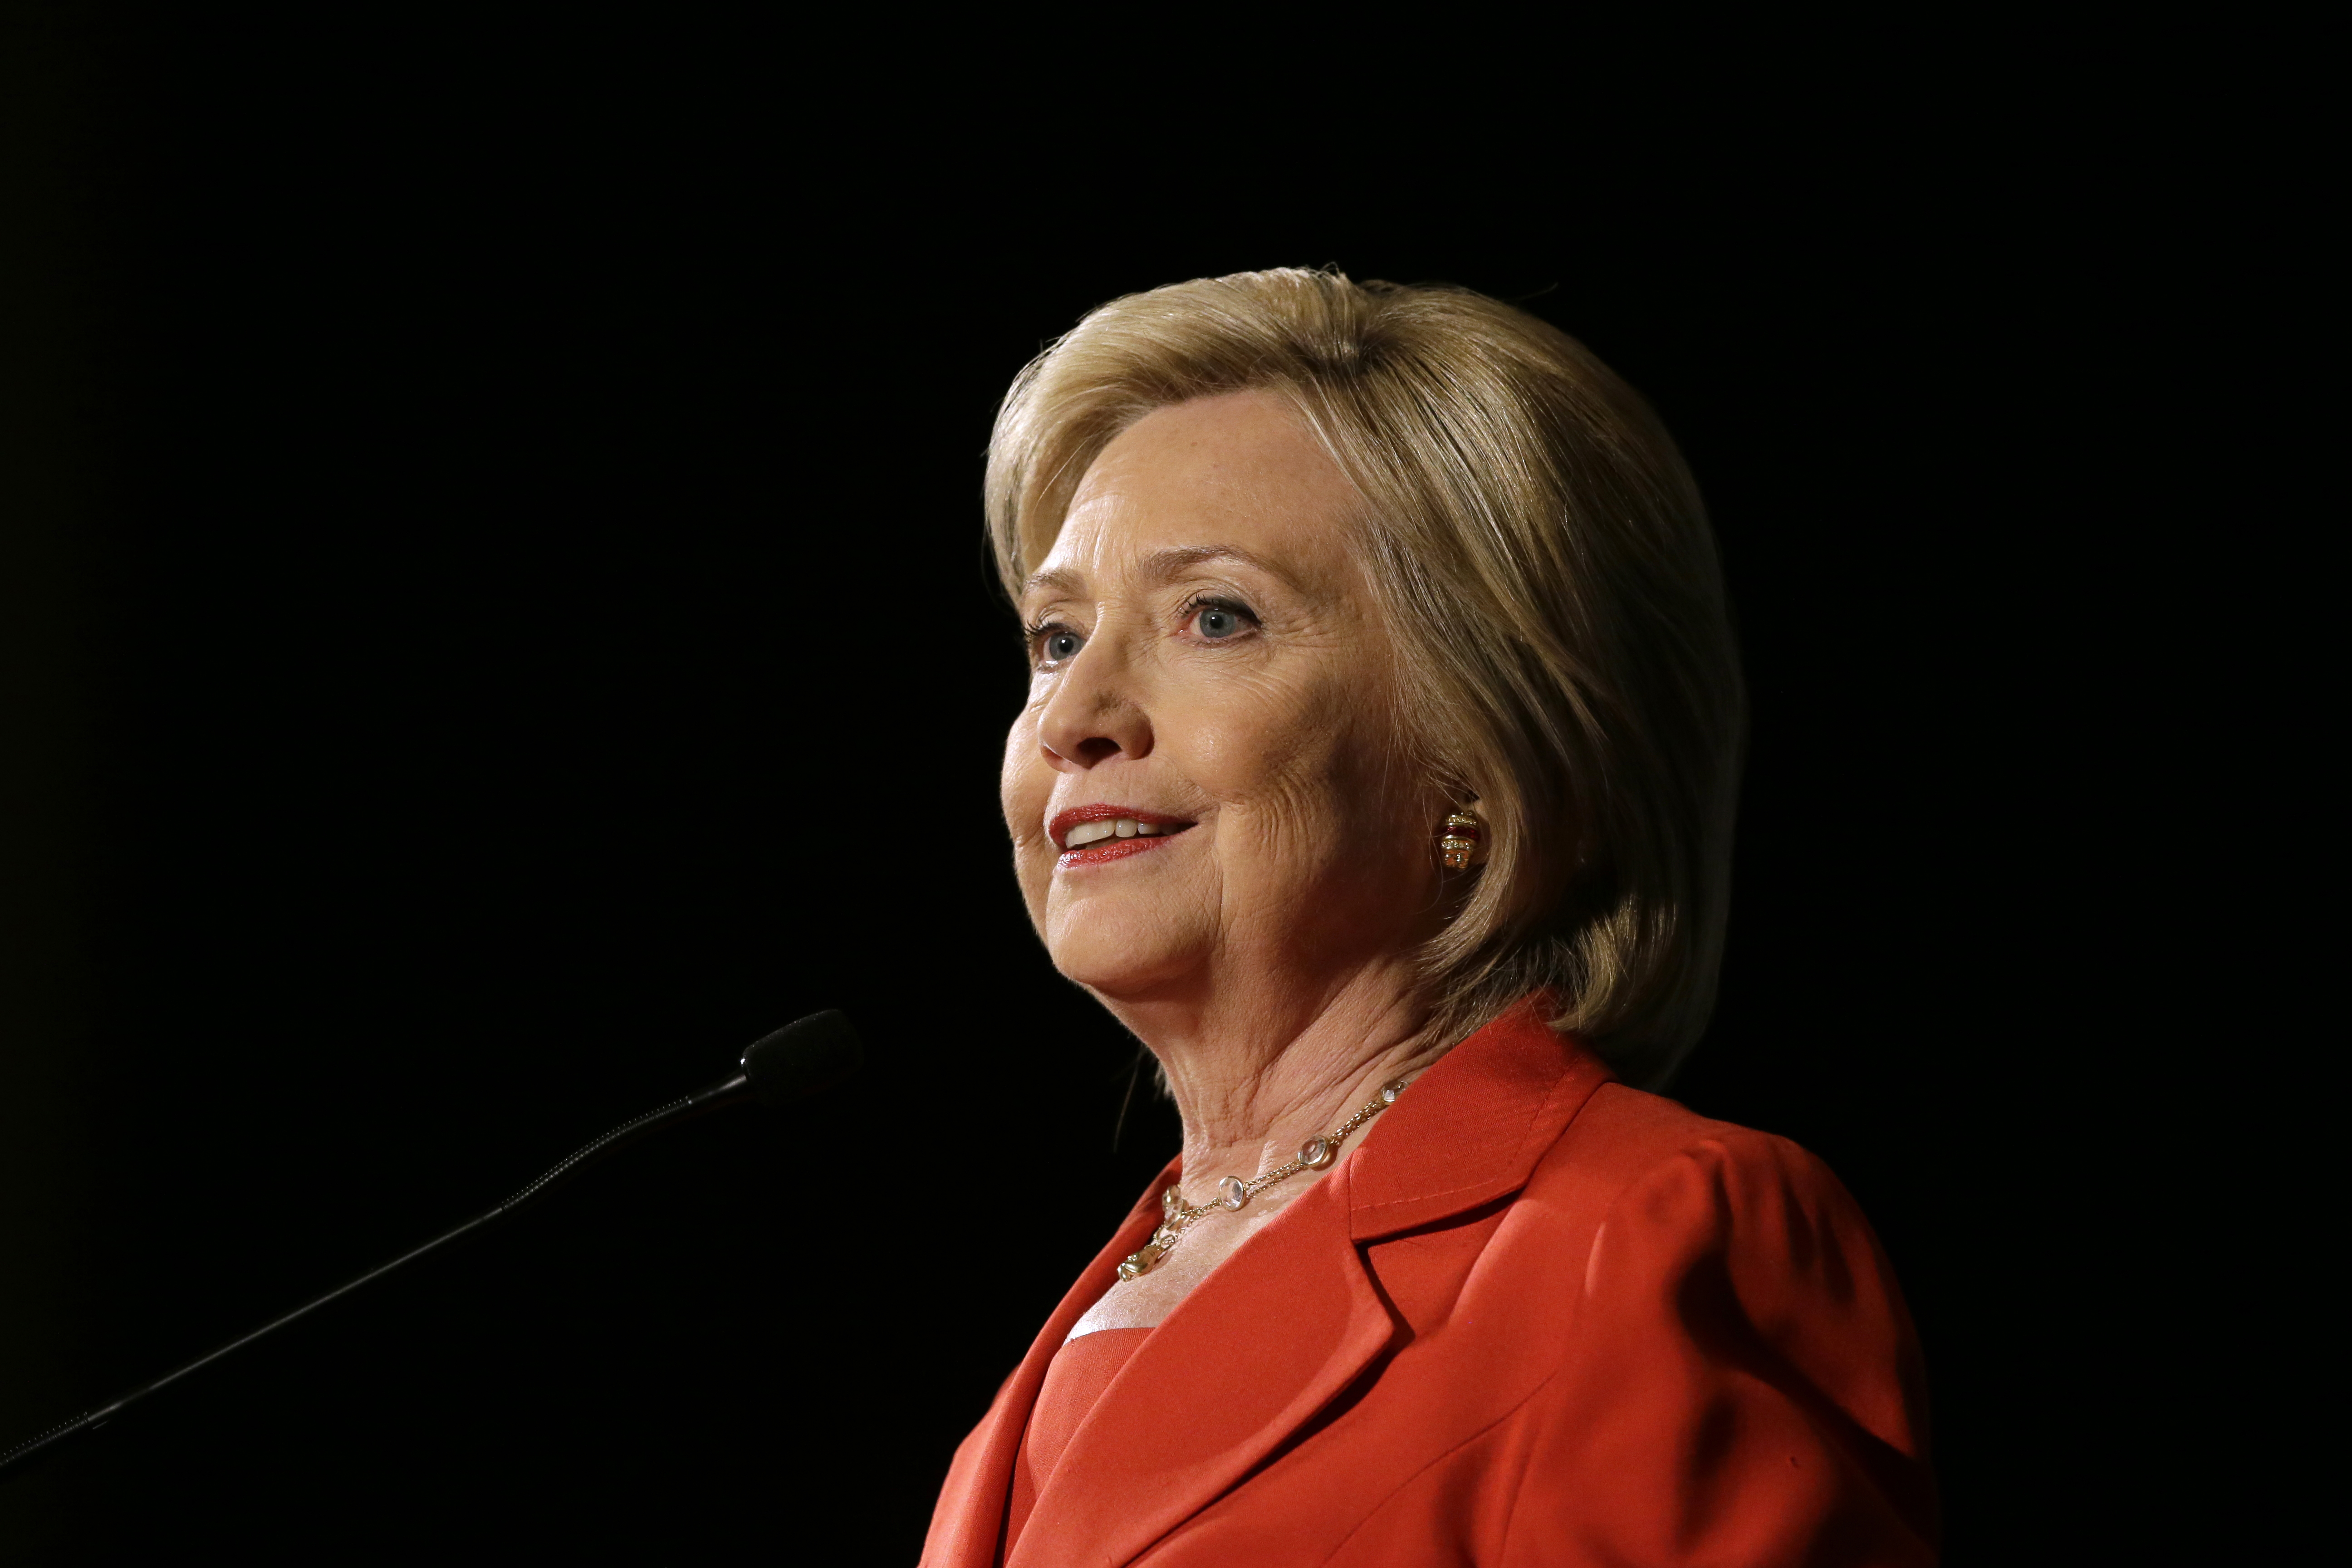 Democratic presidential candidate Hillary Rodham Clinton speaks during the Iowa Democratic Party's Hall of Fame Dinner on July 17, 2015, in Cedar Rapids, Iowa.